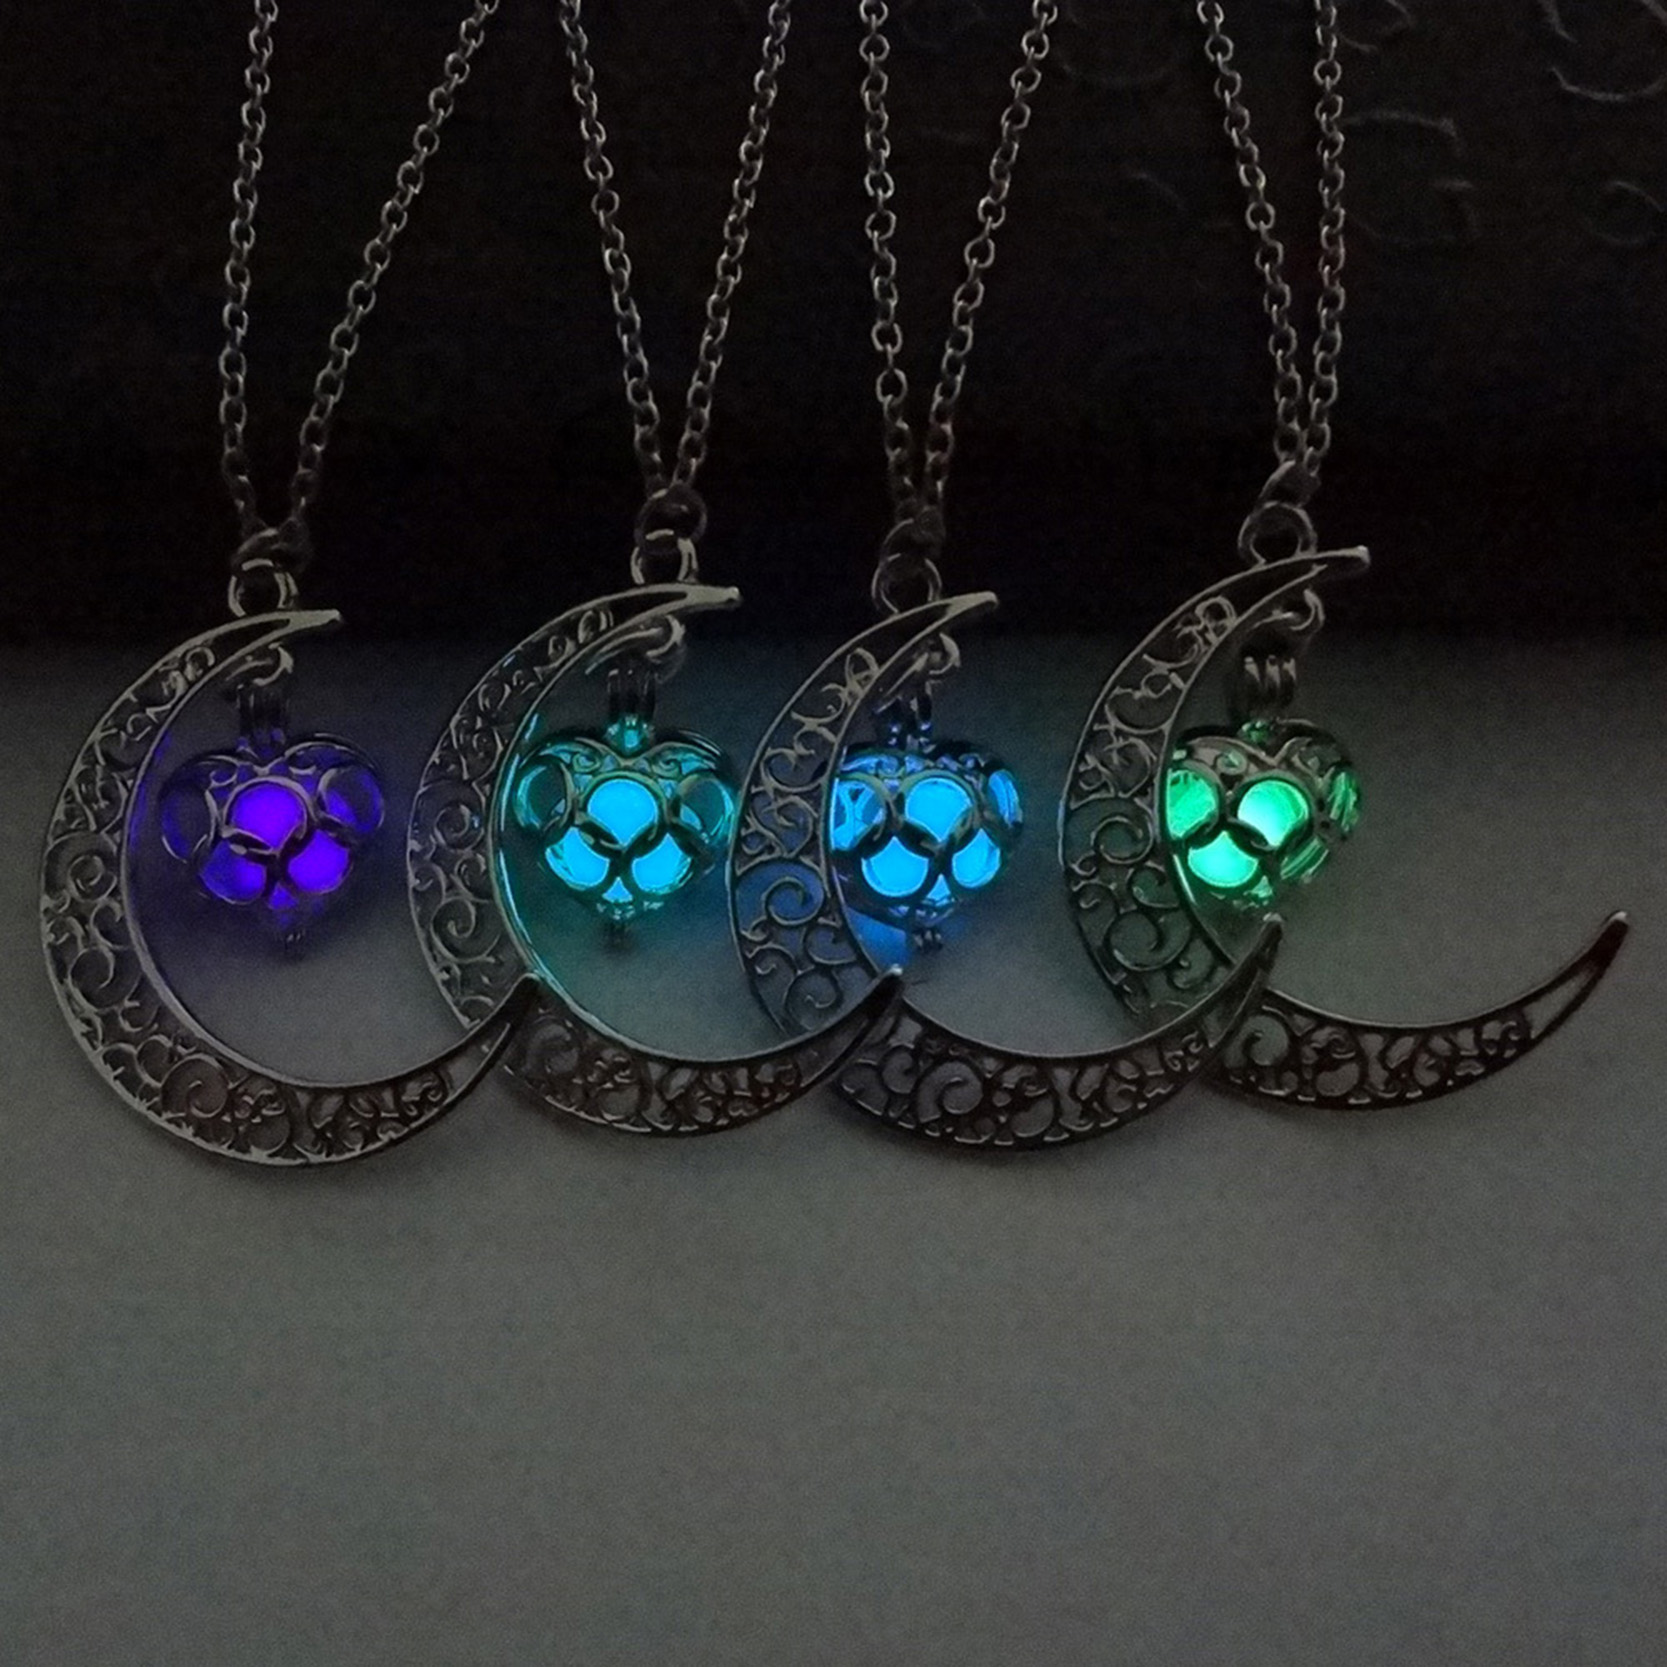 2018 Glowing In The Dark Pendant Necklaces Silver Plated Chain Necklaces Hollow Moon & Heart Choker Necklace Collares Jewelry